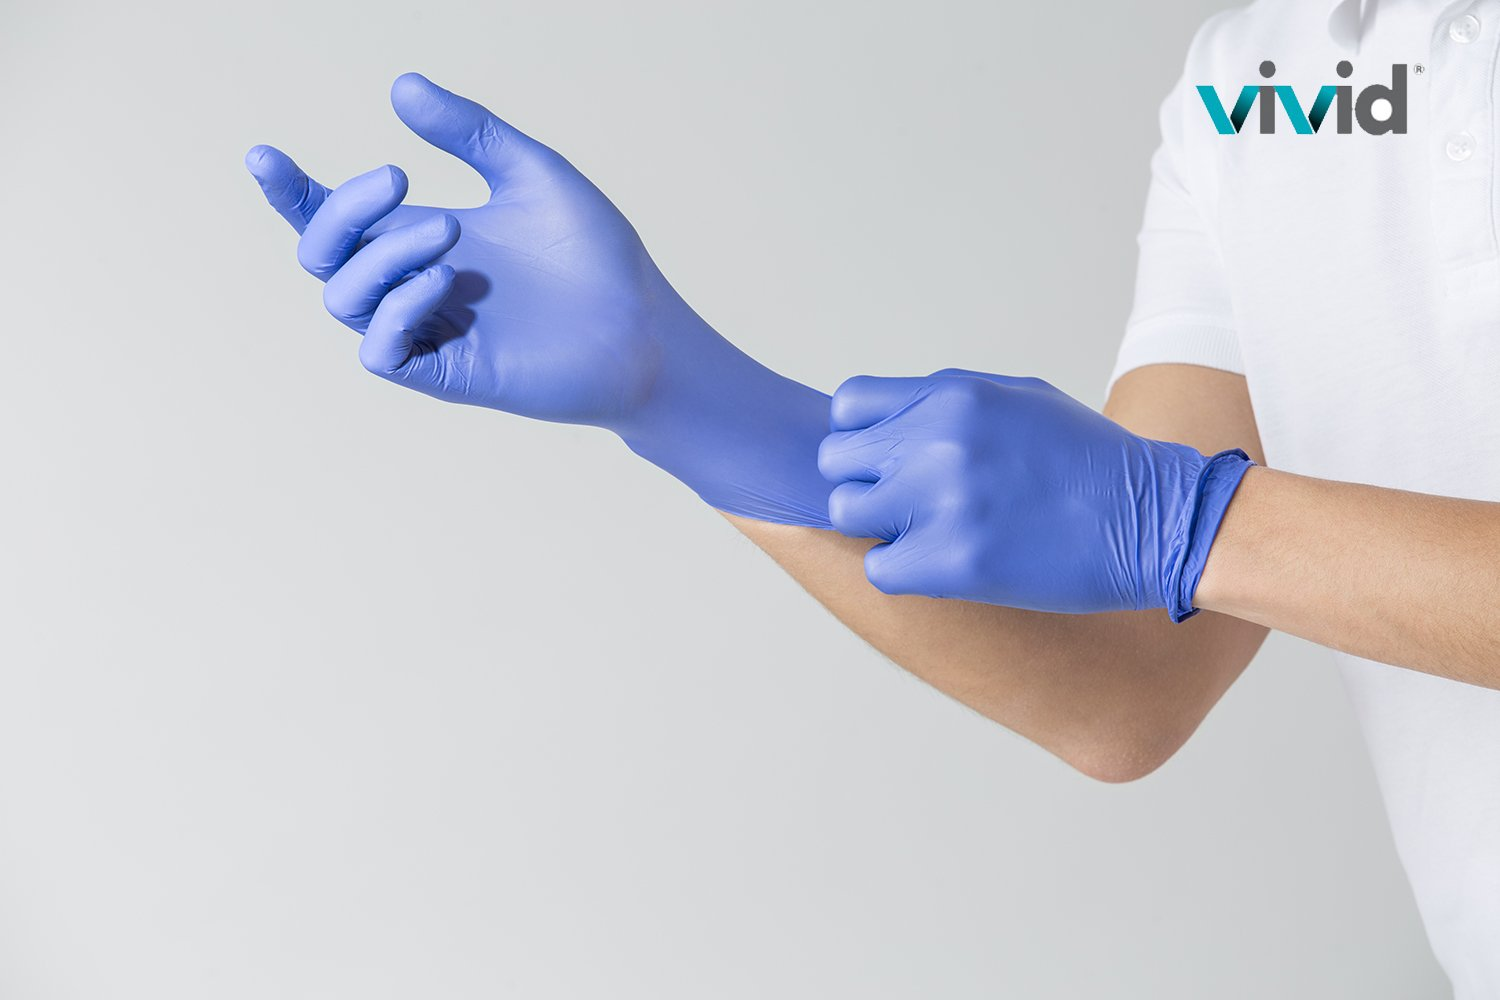 VIVID StyleTouch Purple Nitrile Latex Non Sterile Gloves – for Home, Medical, Professional Use – Disposable – Food Safe, Rubber Free – 2.7 mil, Pack of 300 (Large), StyleTouch by Vivid (Image #3)